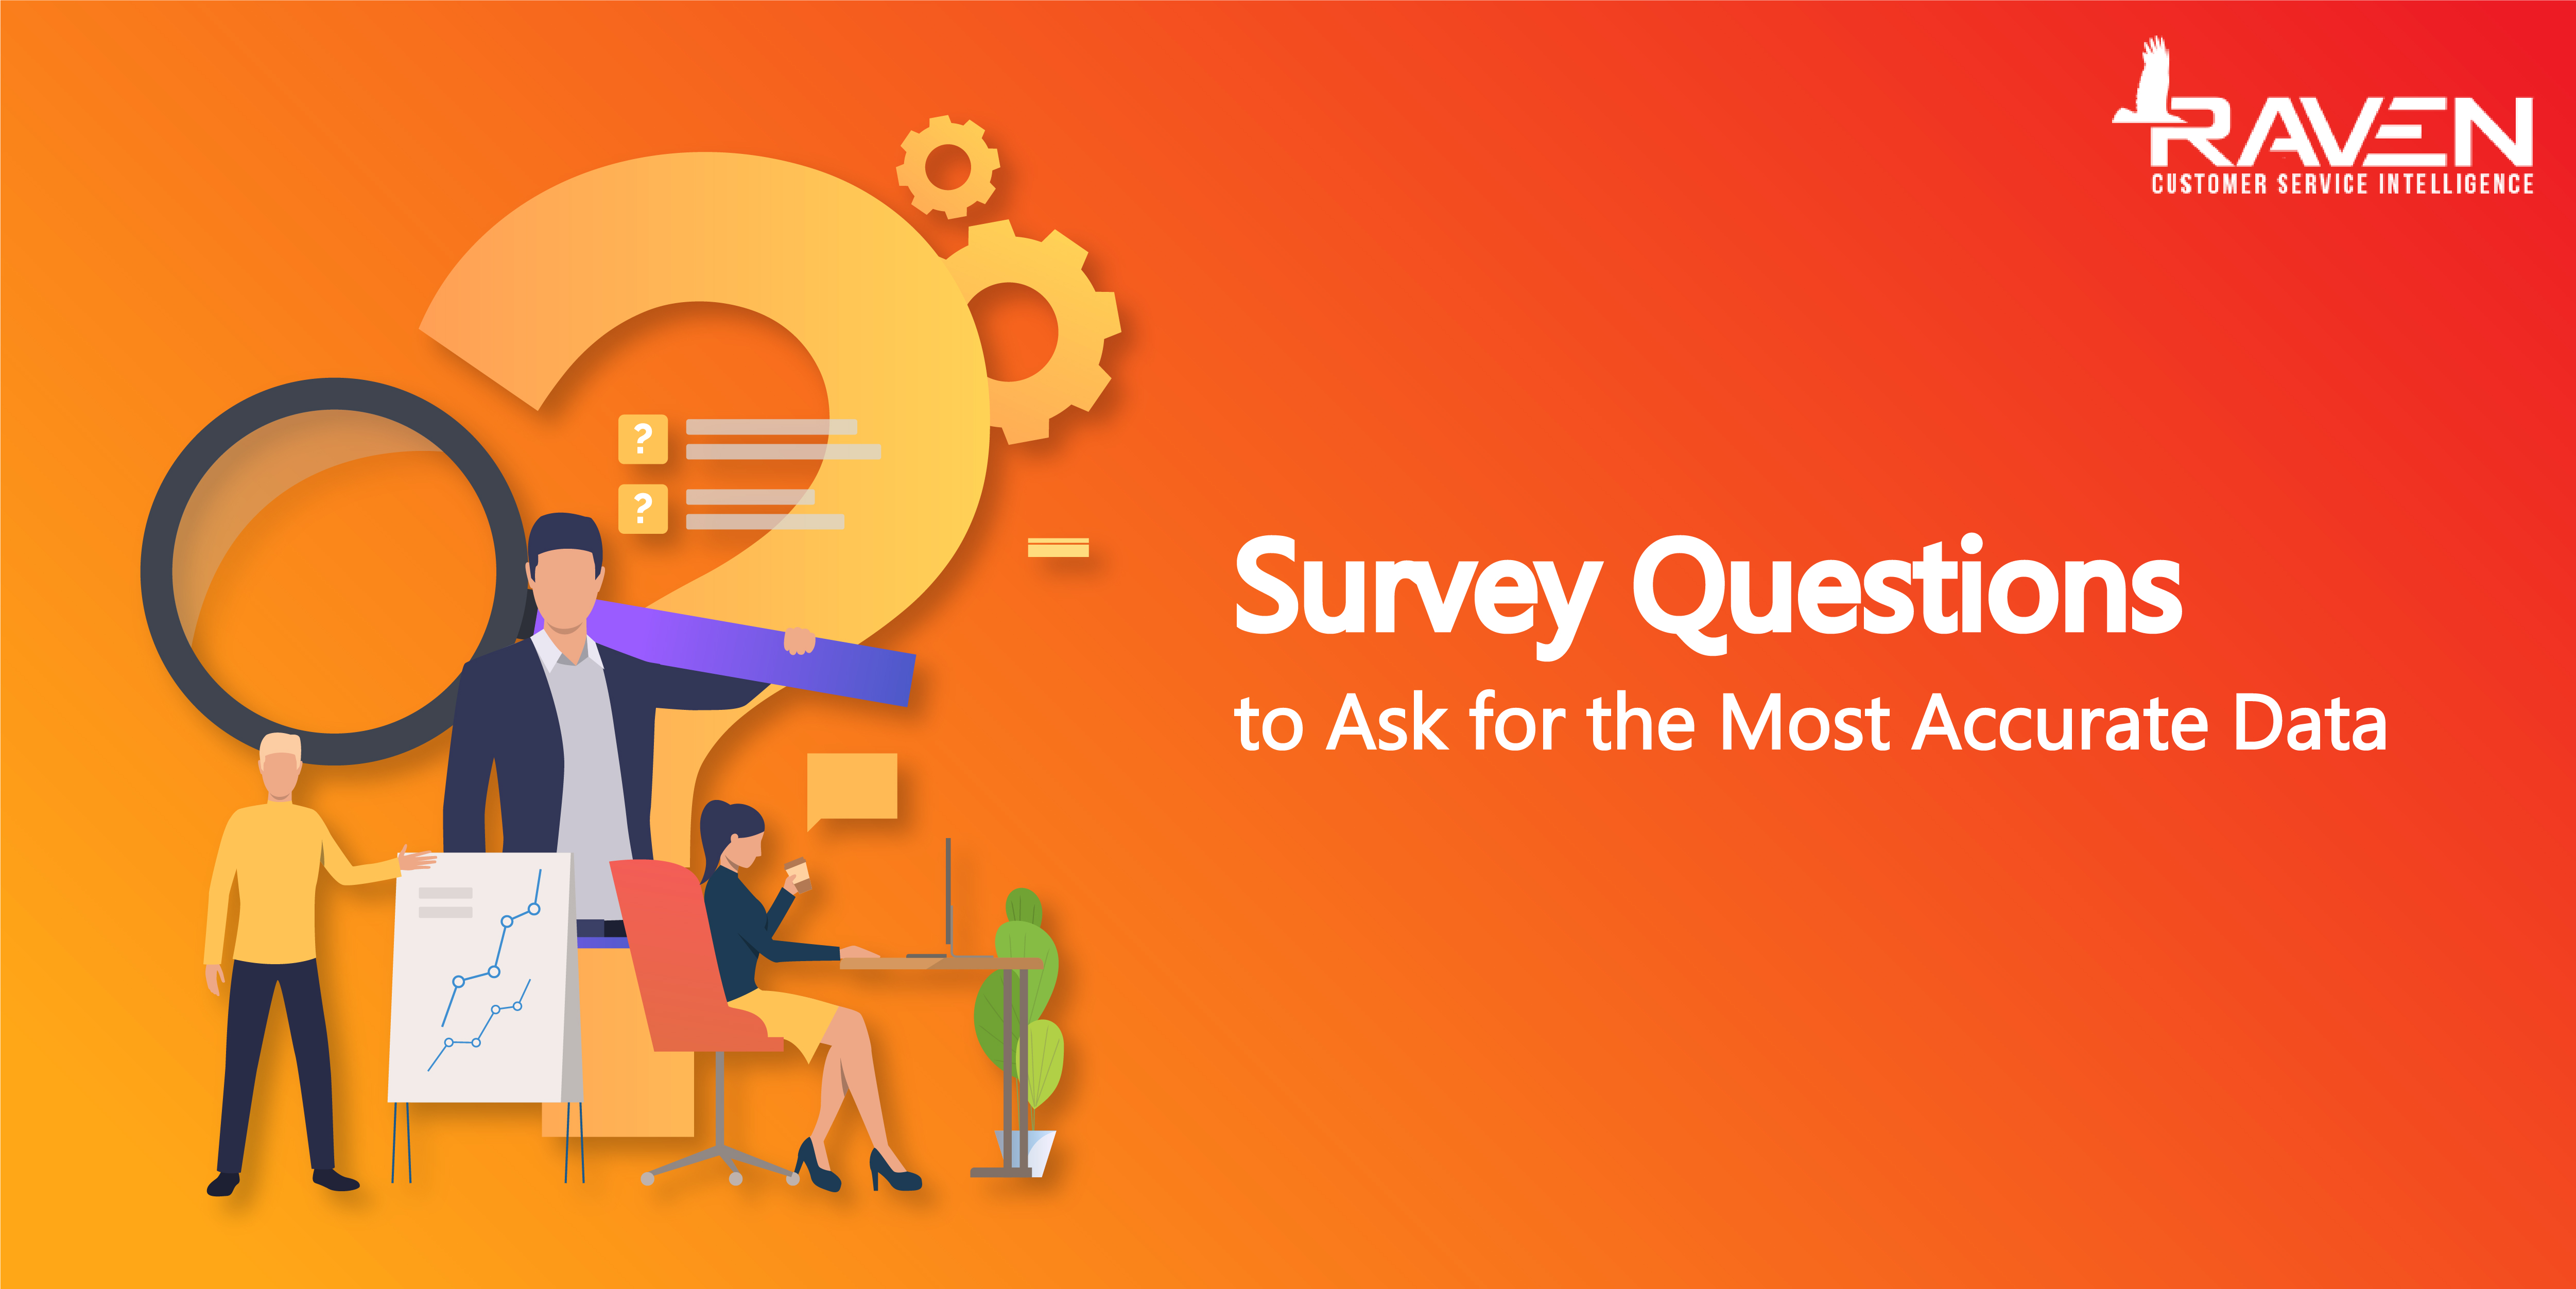 blog8 1 - Importance of Survey Structure: Questions You Should be Asking for the Most Accurate Data Results